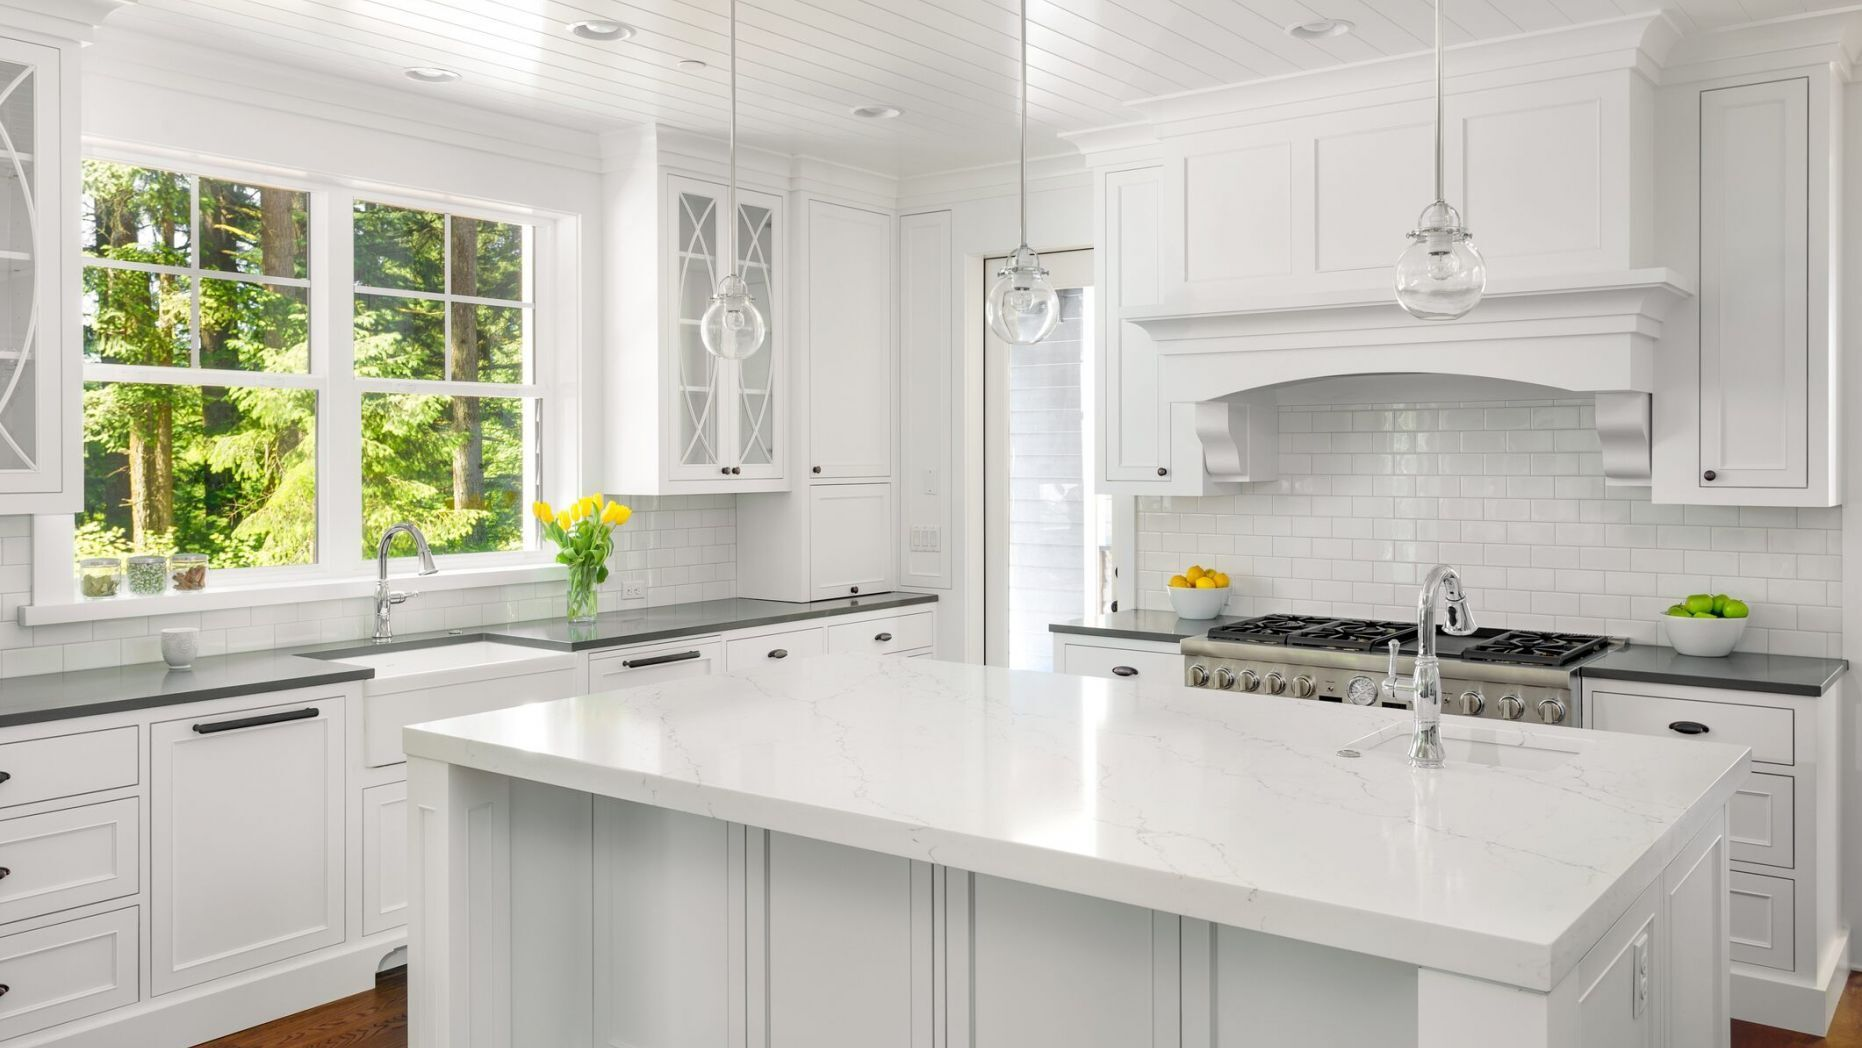 Pin By Power Home Remodeling On Kitchens White Kitchen Design Kitchen Remodel Small Kitchen Remodel Cost